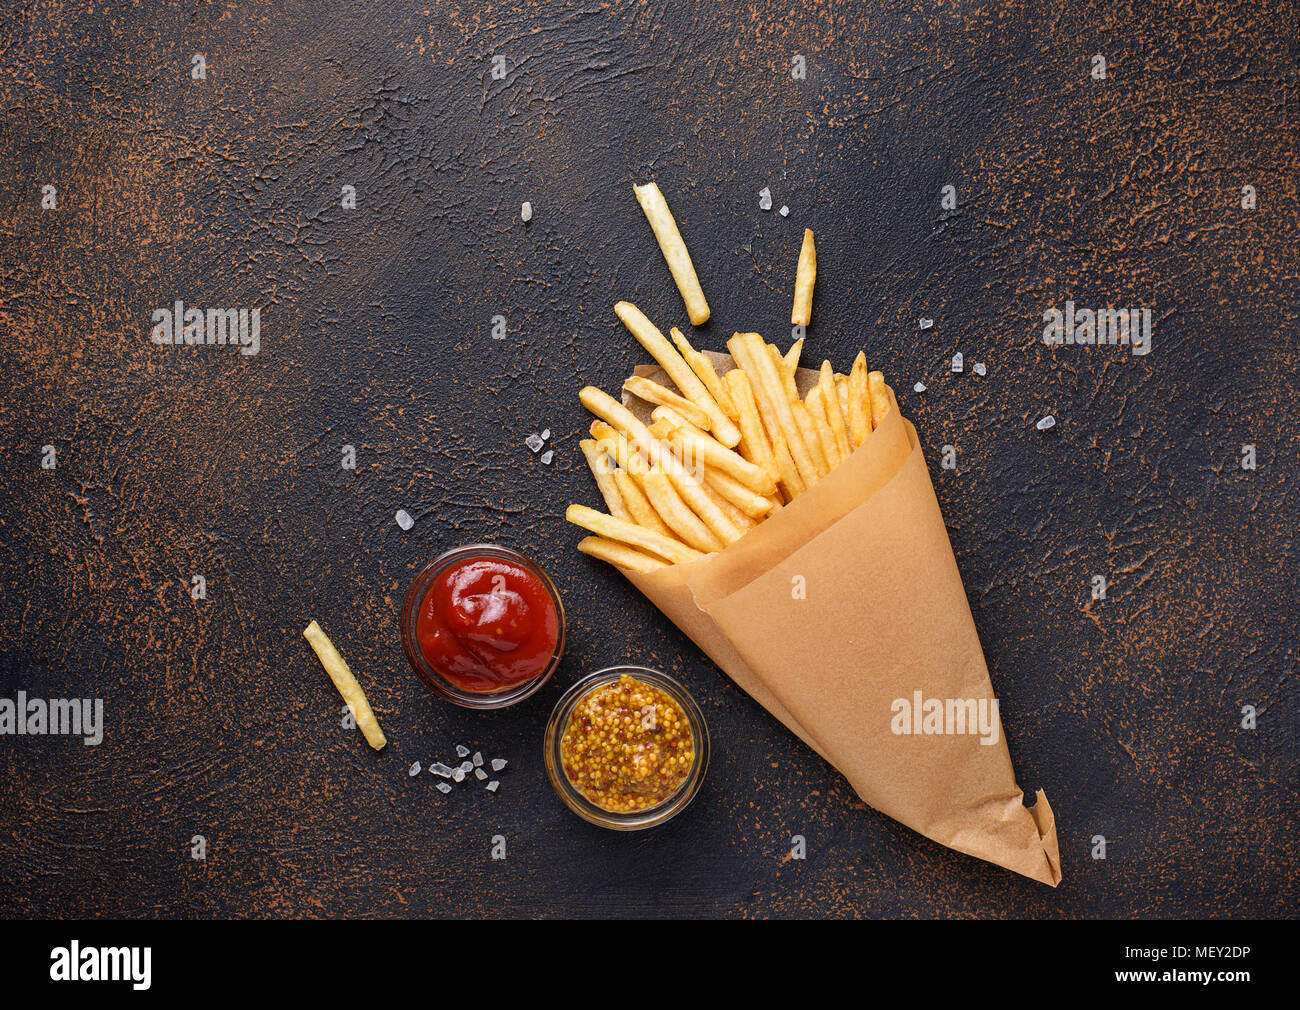 French fries in a paper bag with sauces - Stock Image